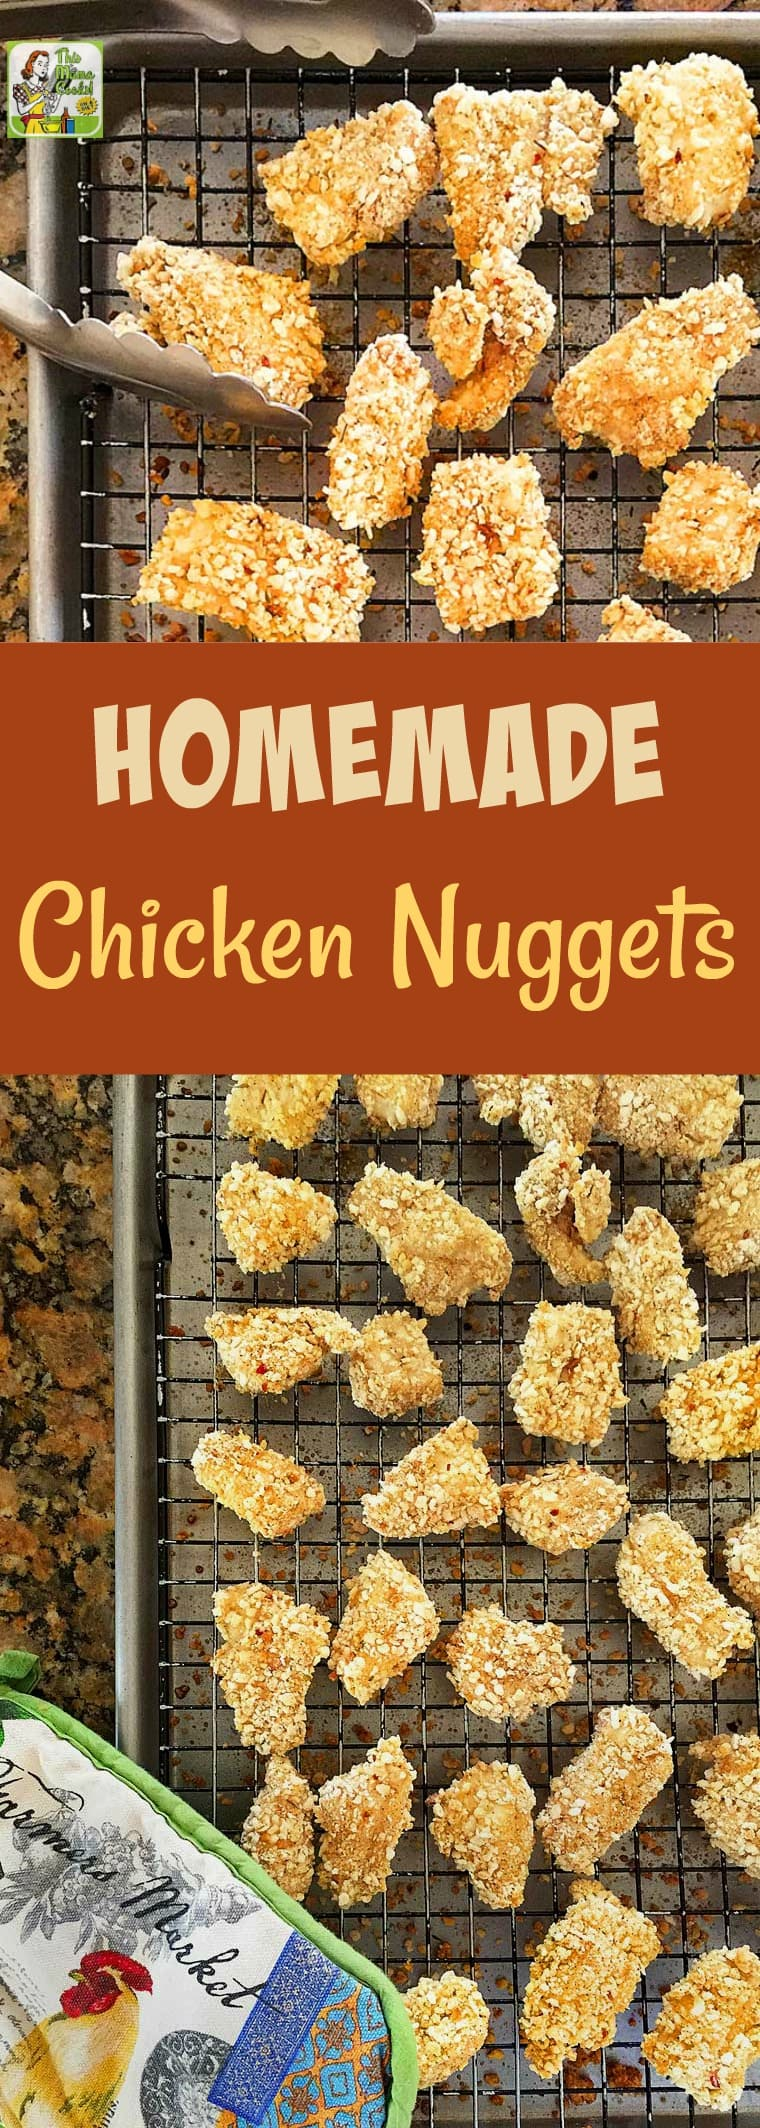 Homemade Chicken Nuggets make easy-to-serve appetizers. This chicken nuggets recipe is gluten-free and kids will love them served with dipping sauce! Make this chicken nugget recipe as a kids\' meal or party appetizer. #recipe #glutenfree #chicken #chickennuggets #kidfriendly #kidfood #appetizer #kidsmeals #appetizers